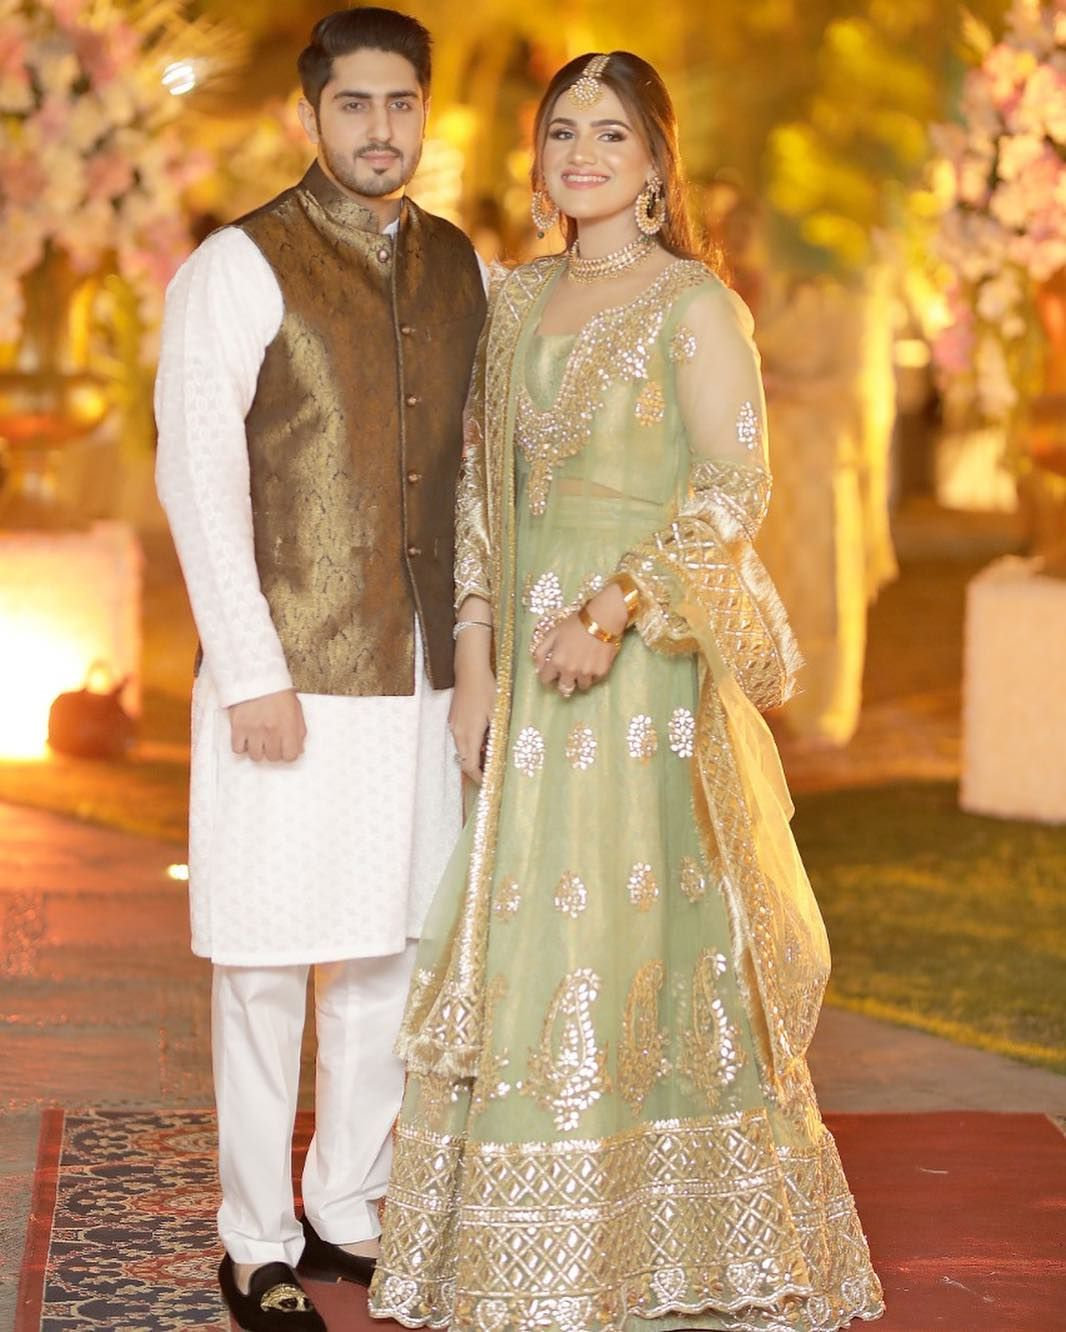 Bride And Groom Only Wedding Ideas: Pin By Ramsha Khan On Bridal Dresses In 2019